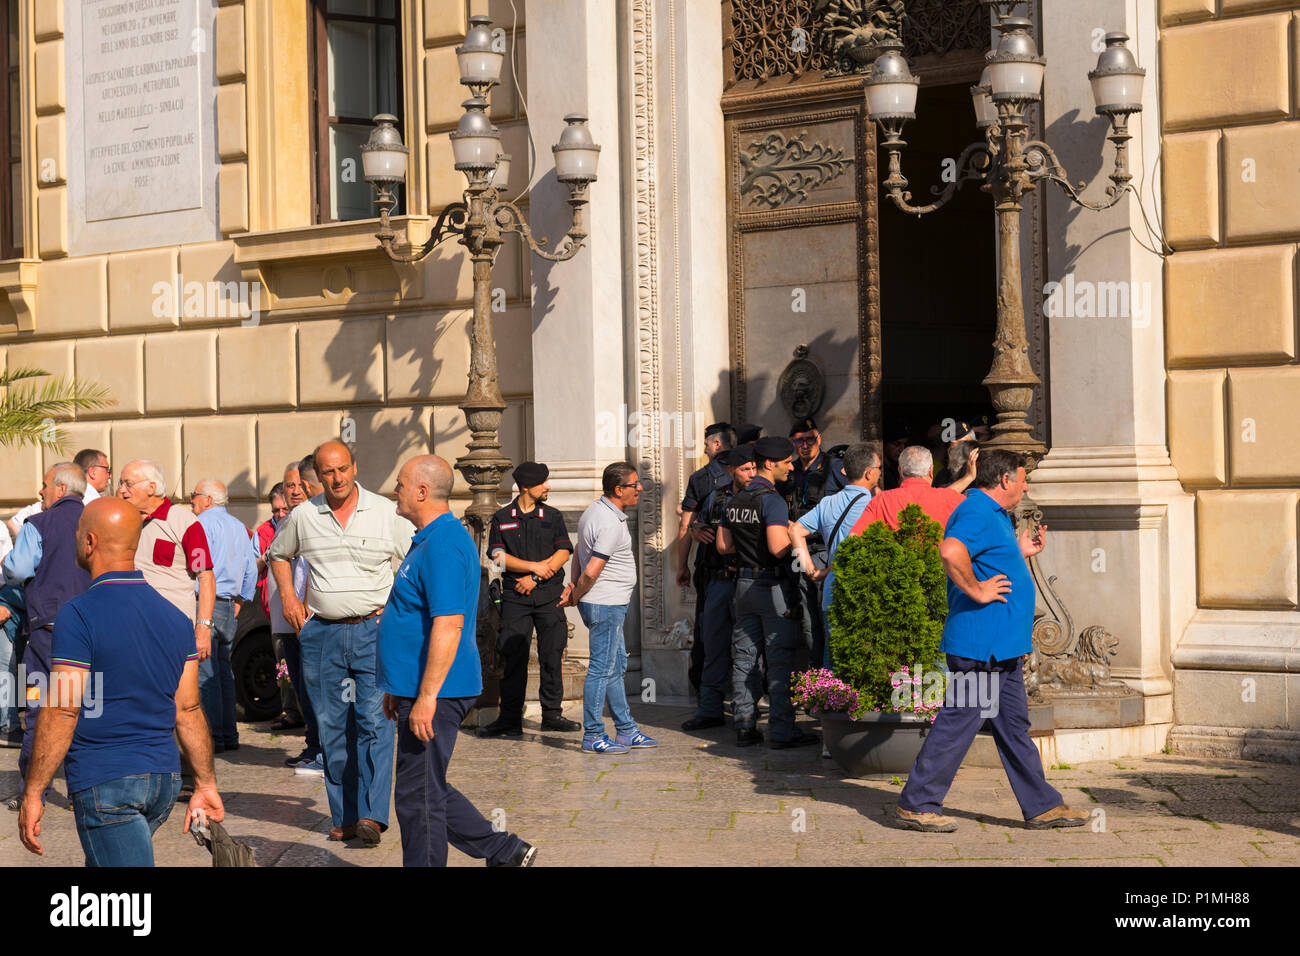 Italy Sicily Palermo Piazza Pretoria City Hall Town Hall community centre center people police demonstration street scene lights doors gates - Stock Image